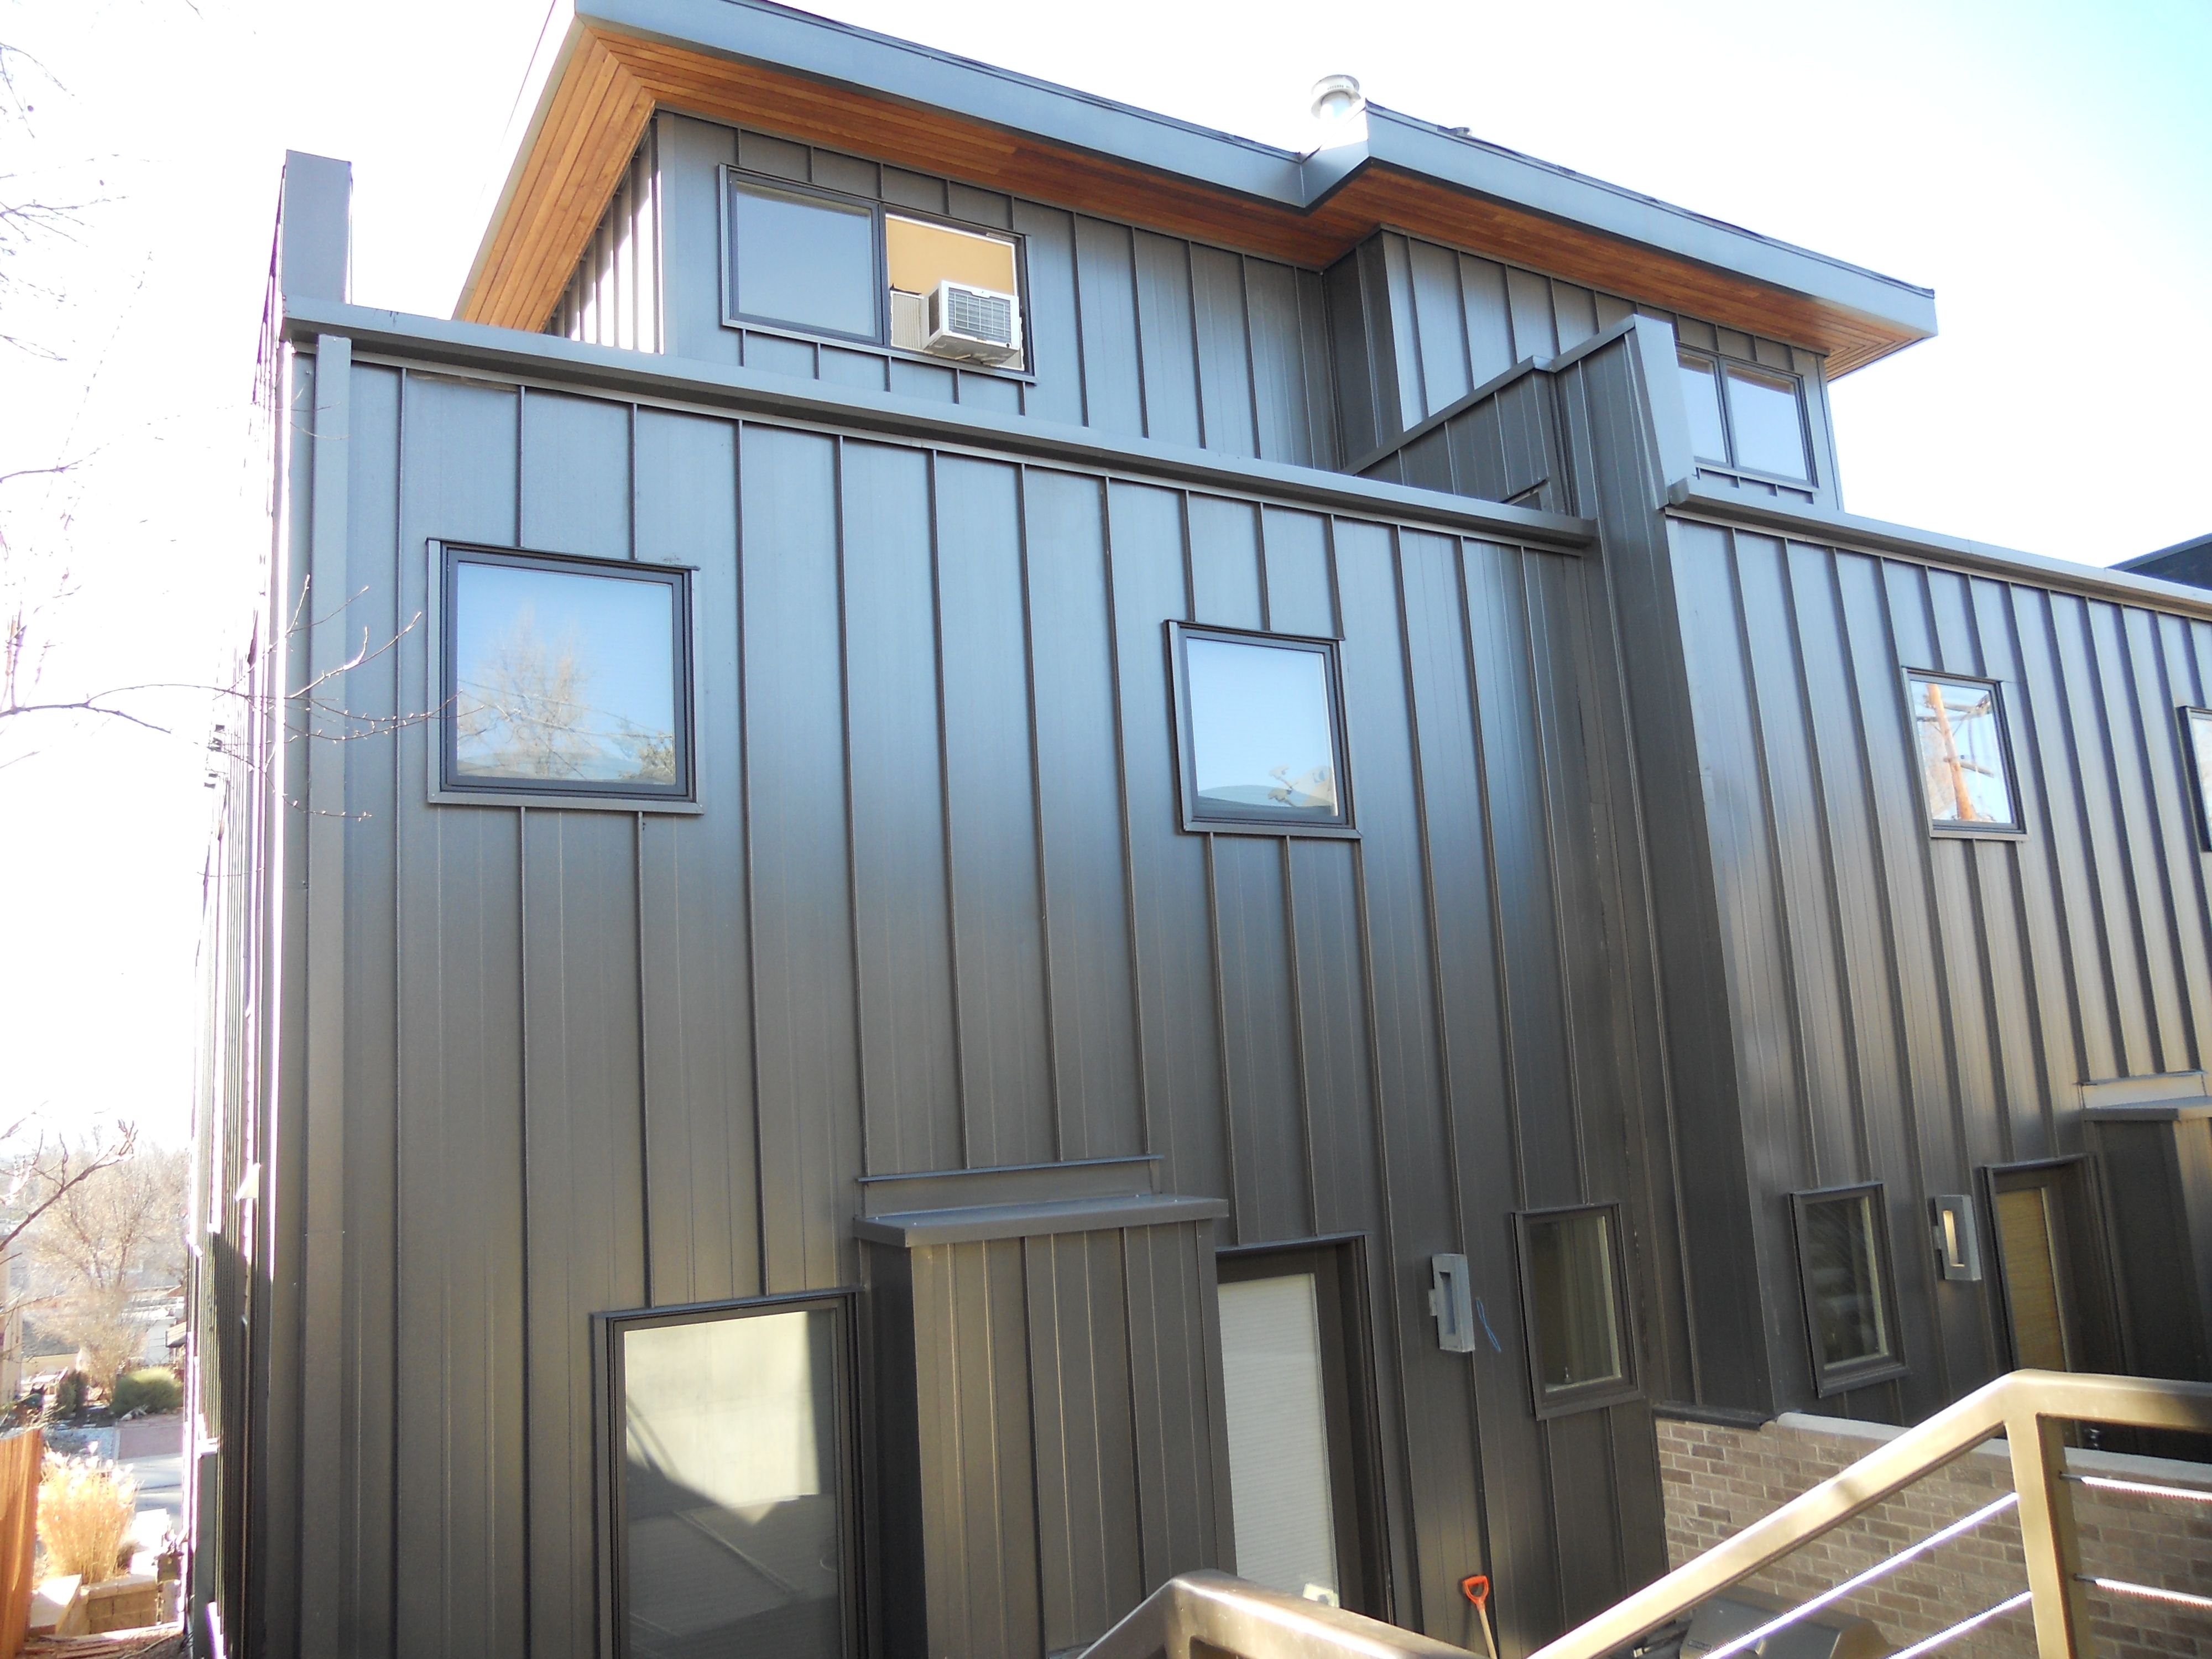 Call 303 424 9707 Or Email Craft Corp Today For A Free Metal Roofing And Siding Quote